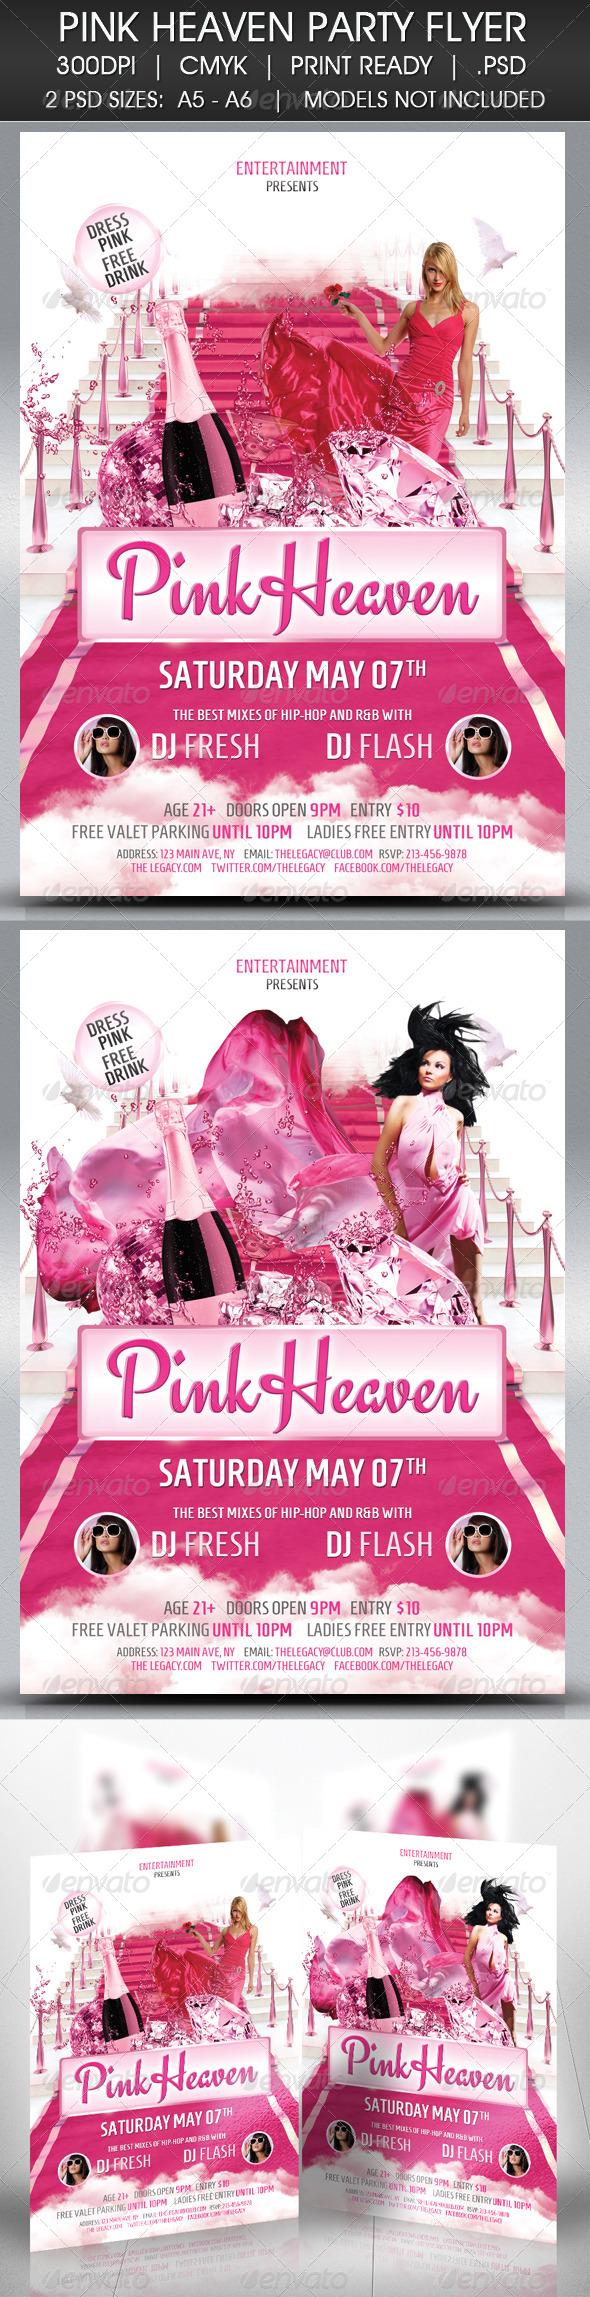 Pink Passion Affair Party Flyer - Clubs & Parties Events